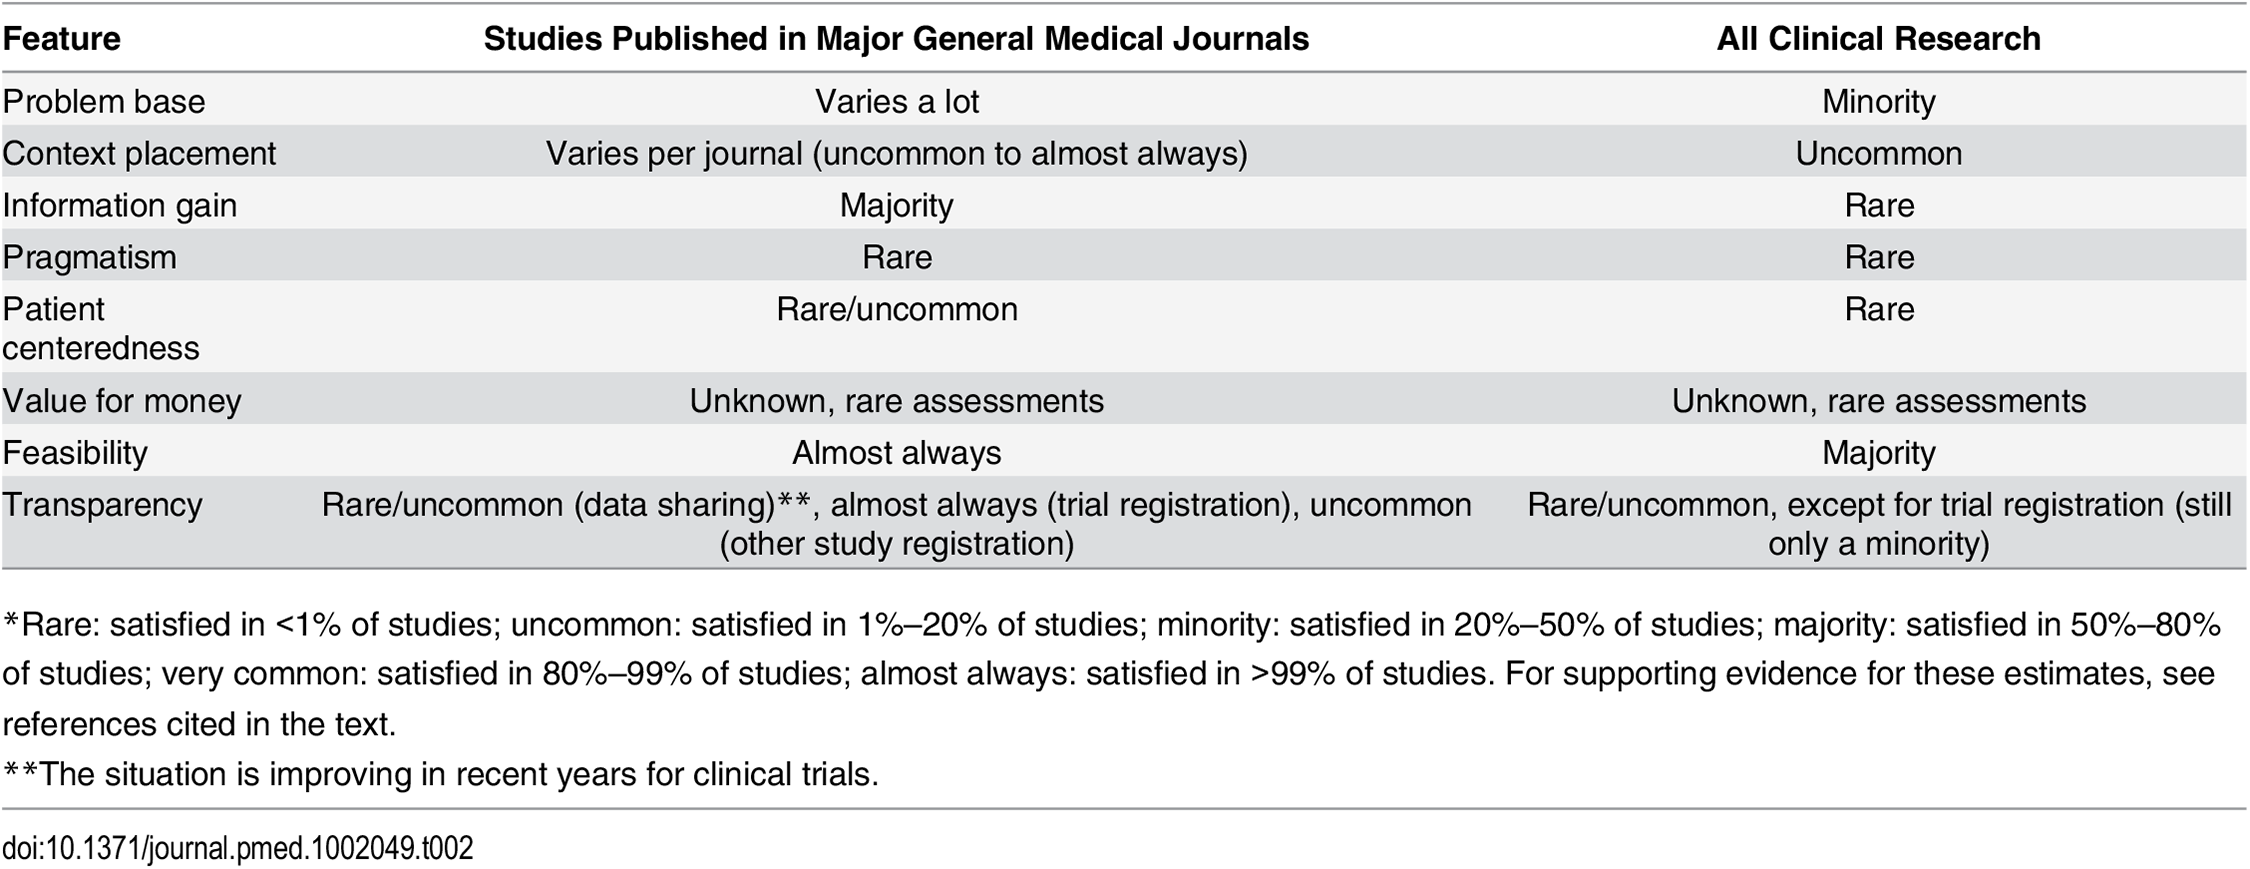 How often is each utility feature satisfied in studies published in major general medical journals and across all clinical research?<em class=&quot;ref&quot;>*</em>